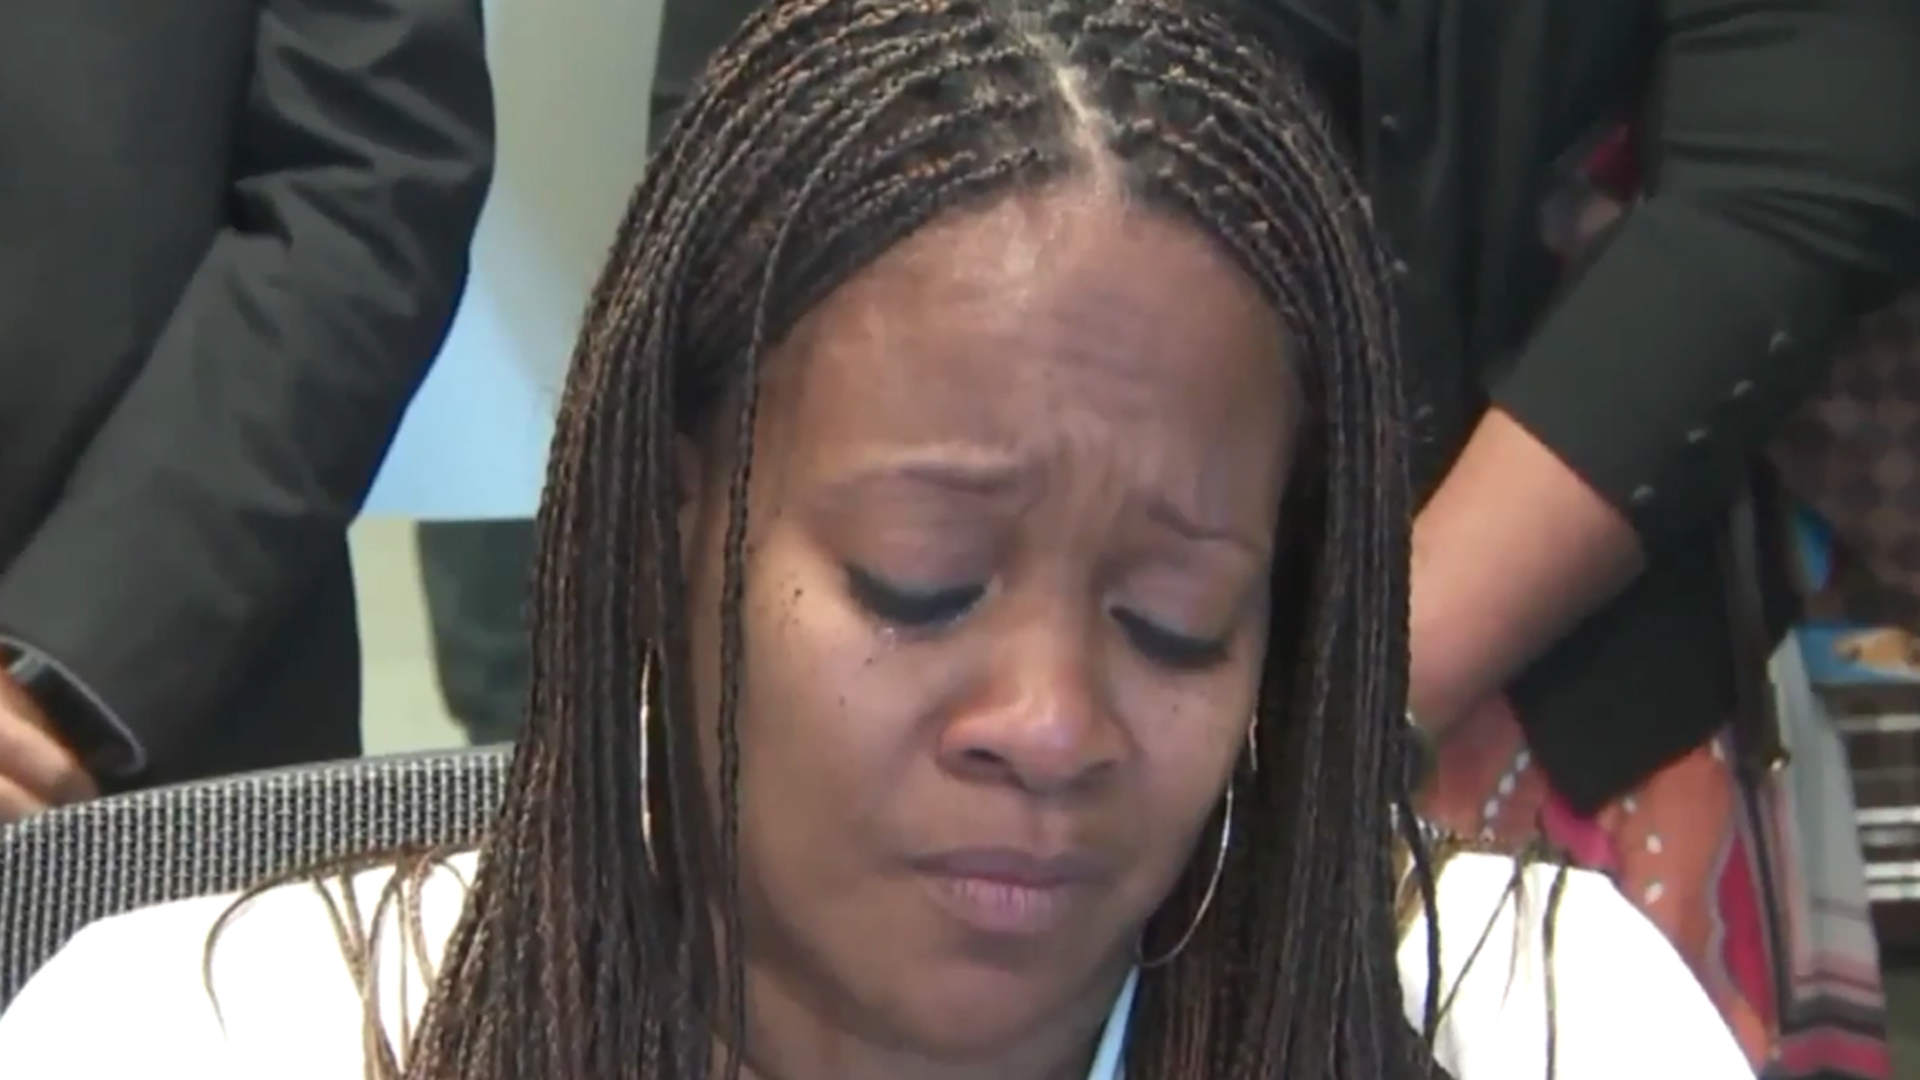 Chery Townsend appears in a news conference on Oct. 1, 2018. (Credit: KTLA)